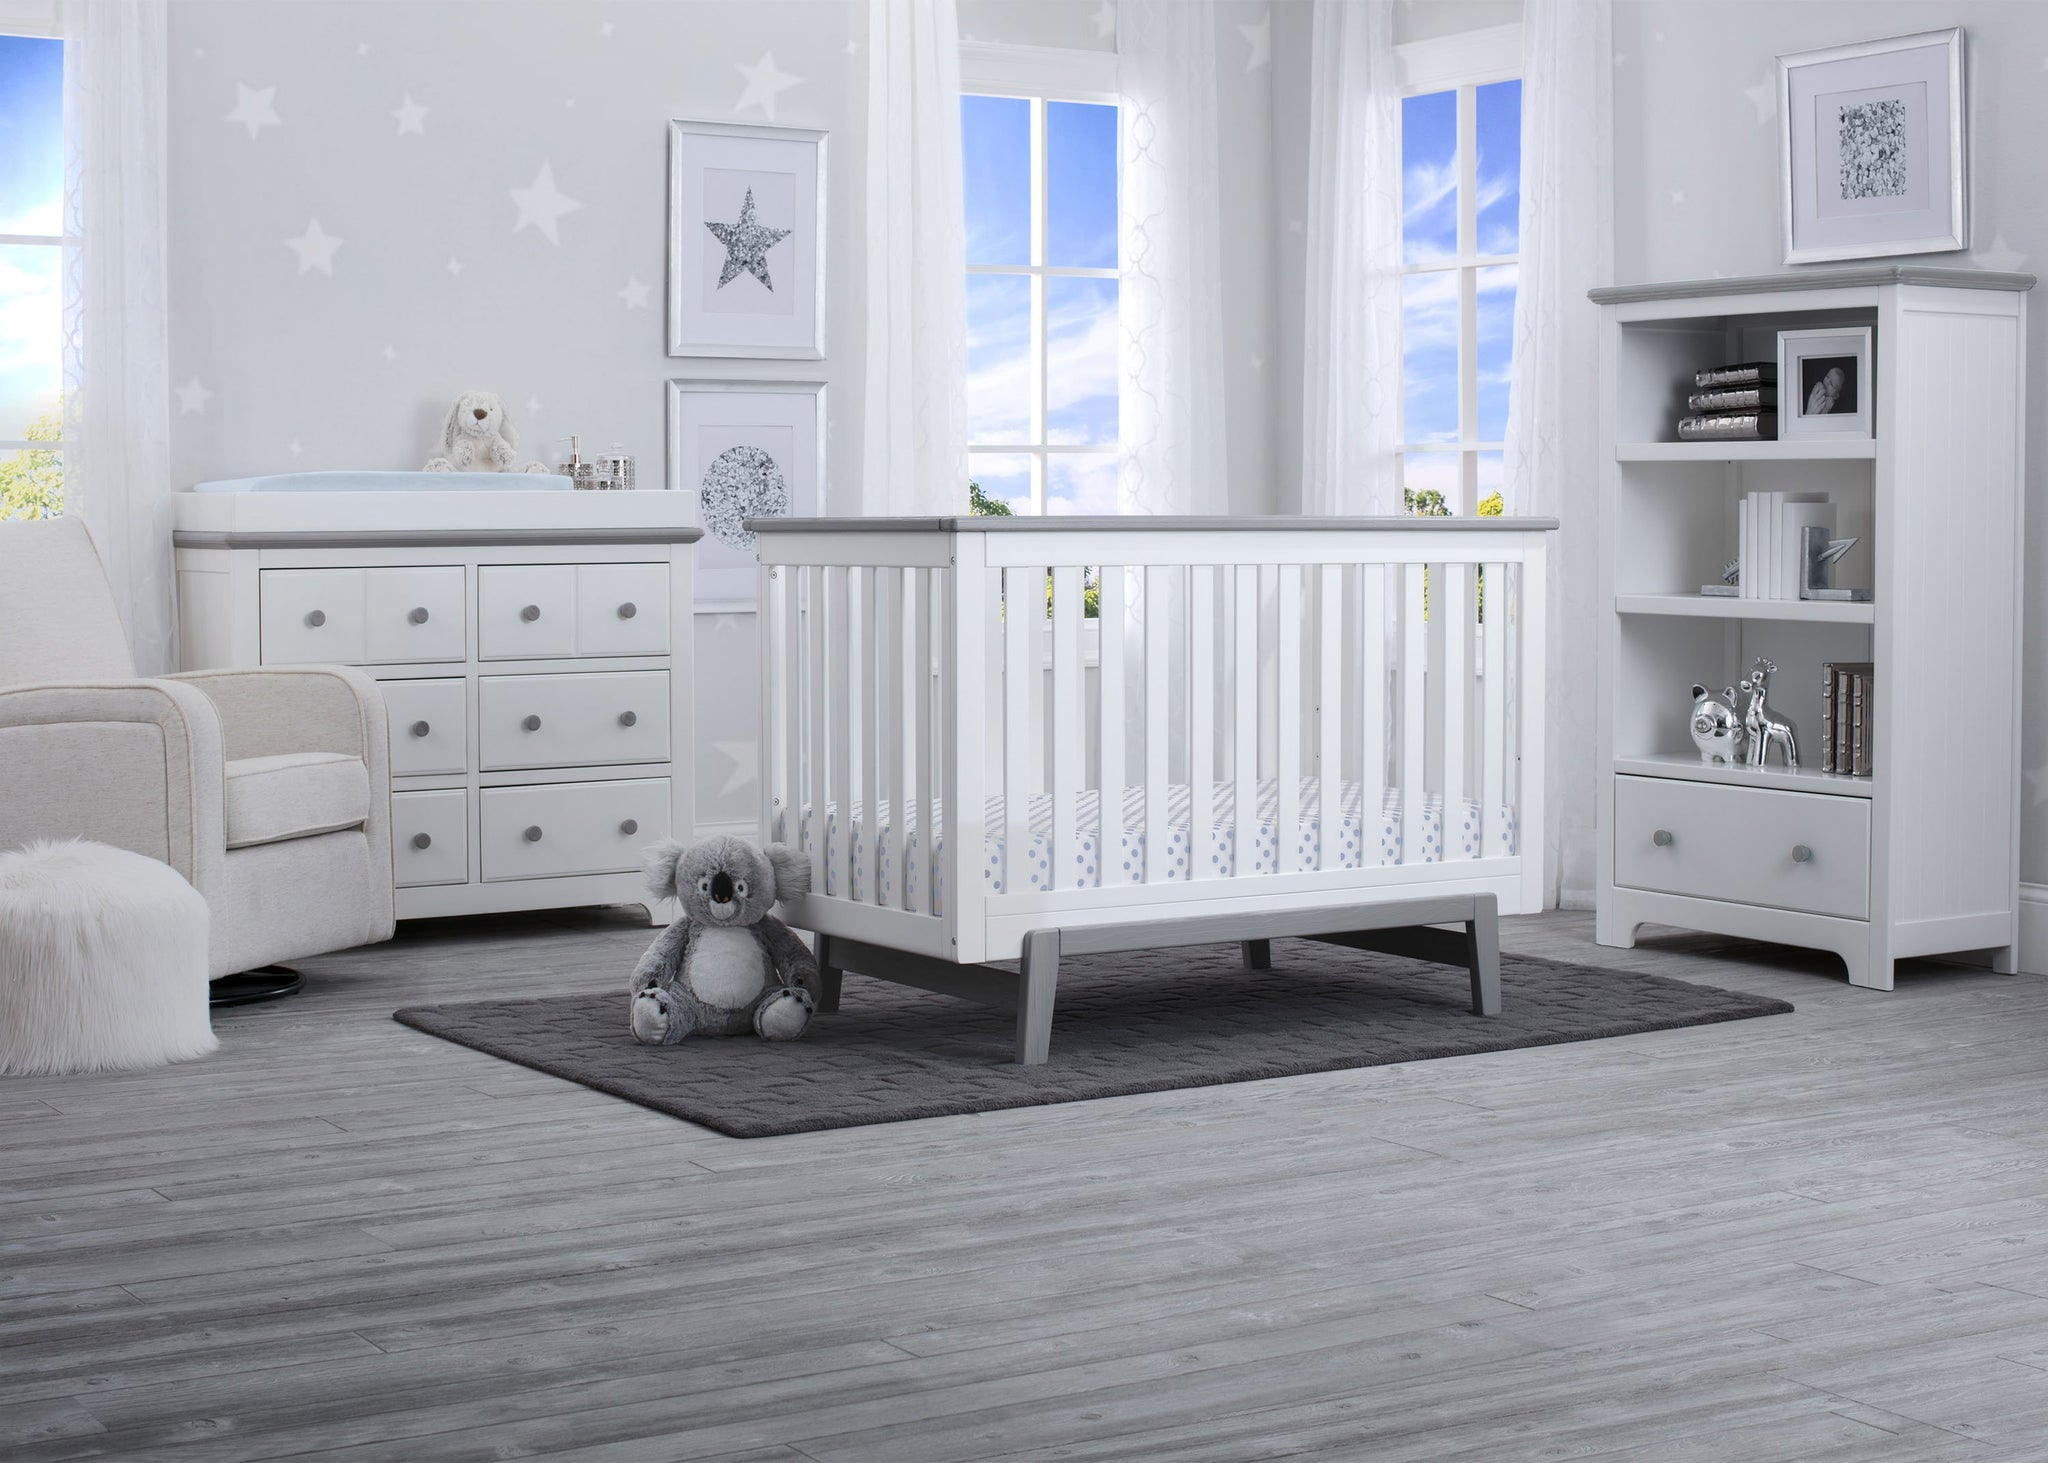 Delta Children Bianca with Rustic Haze (136) Providence Classic 4-in-1 Convertible Crib (548650), Room, b1b